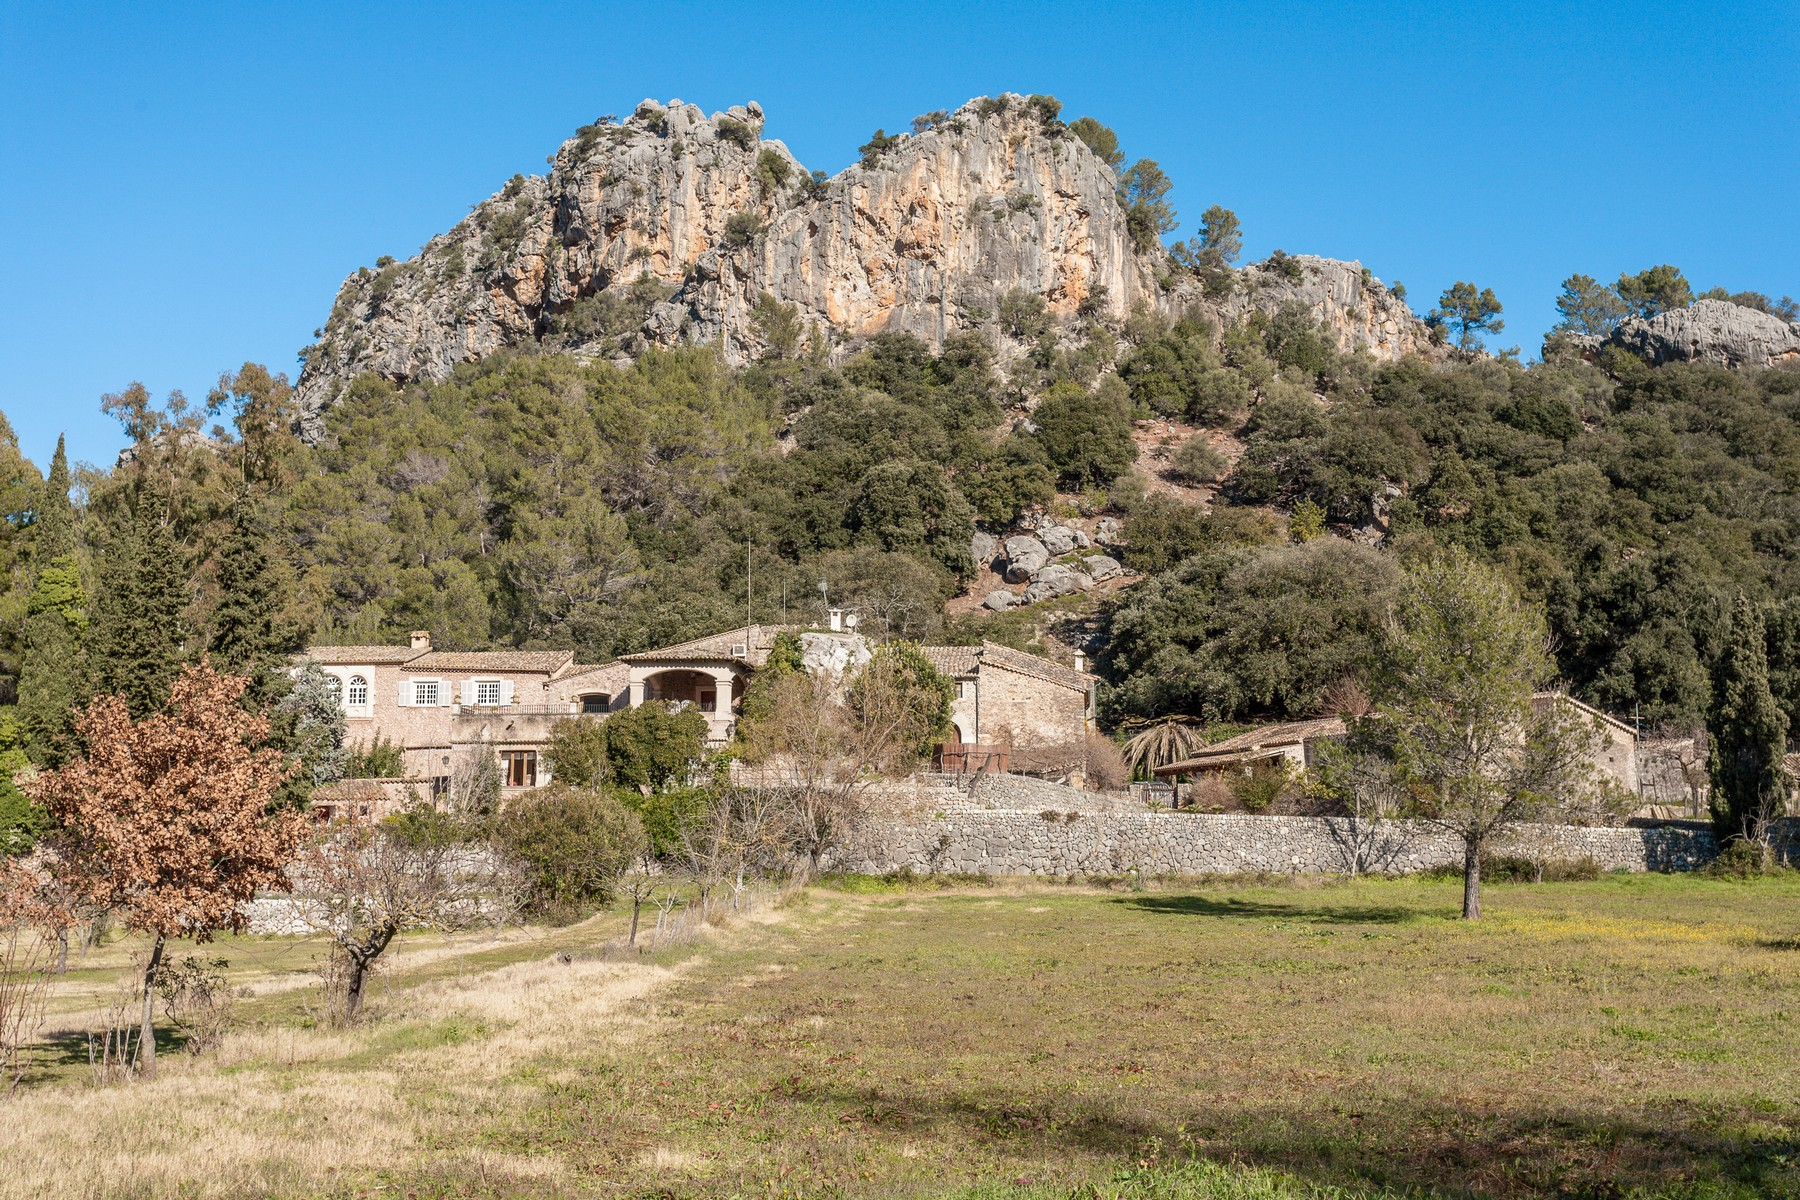 Single Family Home for Sale at Rural Manor in Lluc Lluc, Mallorca, 07001 Spain